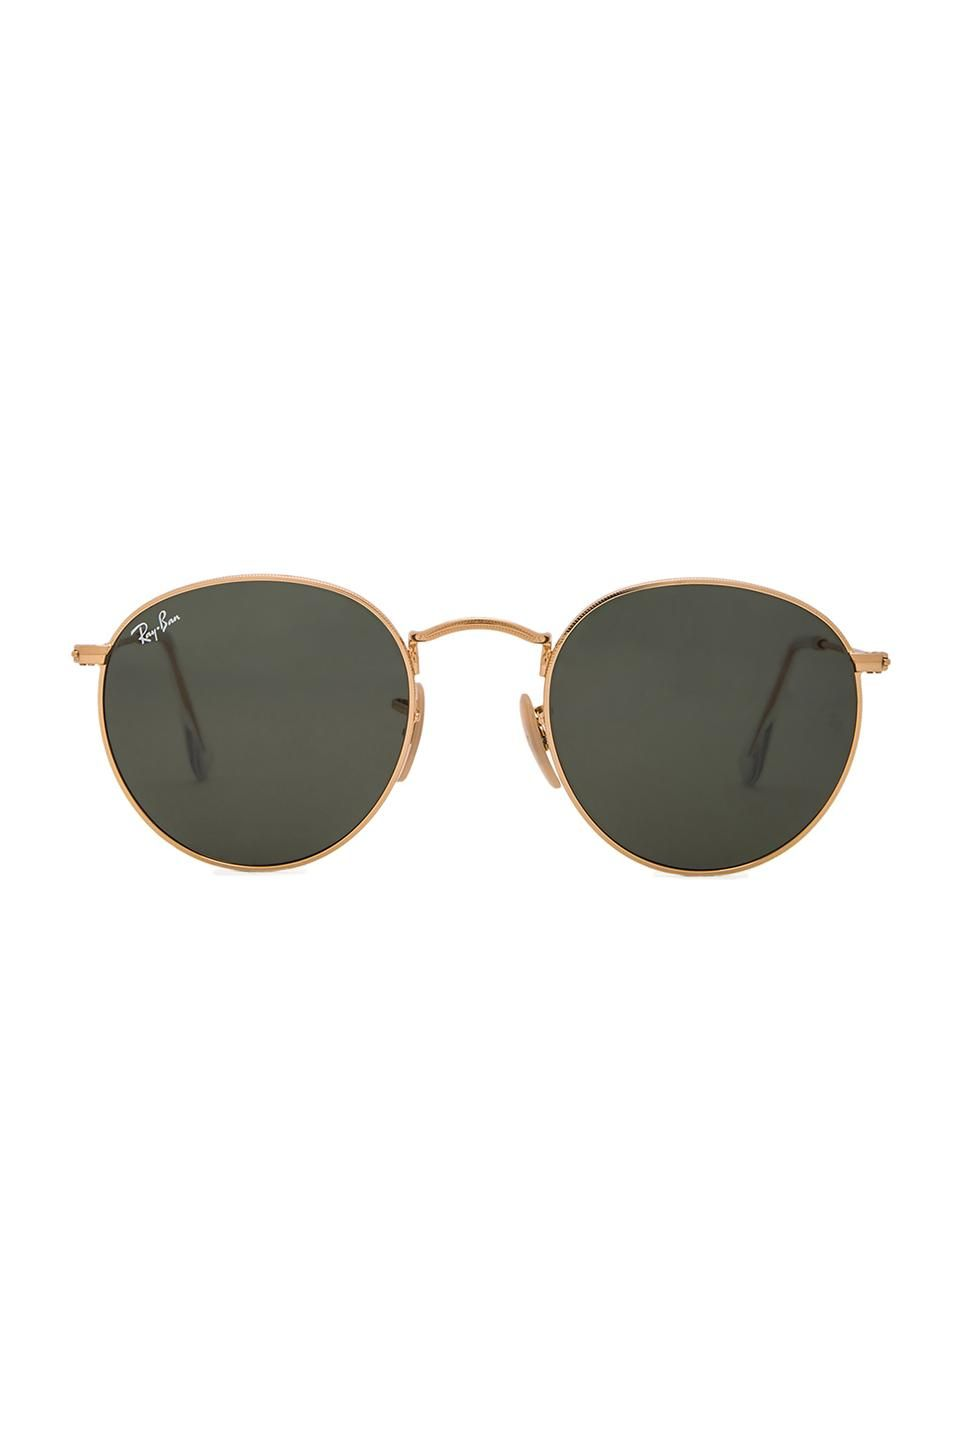 b87153f50 Ray-Ban Round Metal in Green Classic